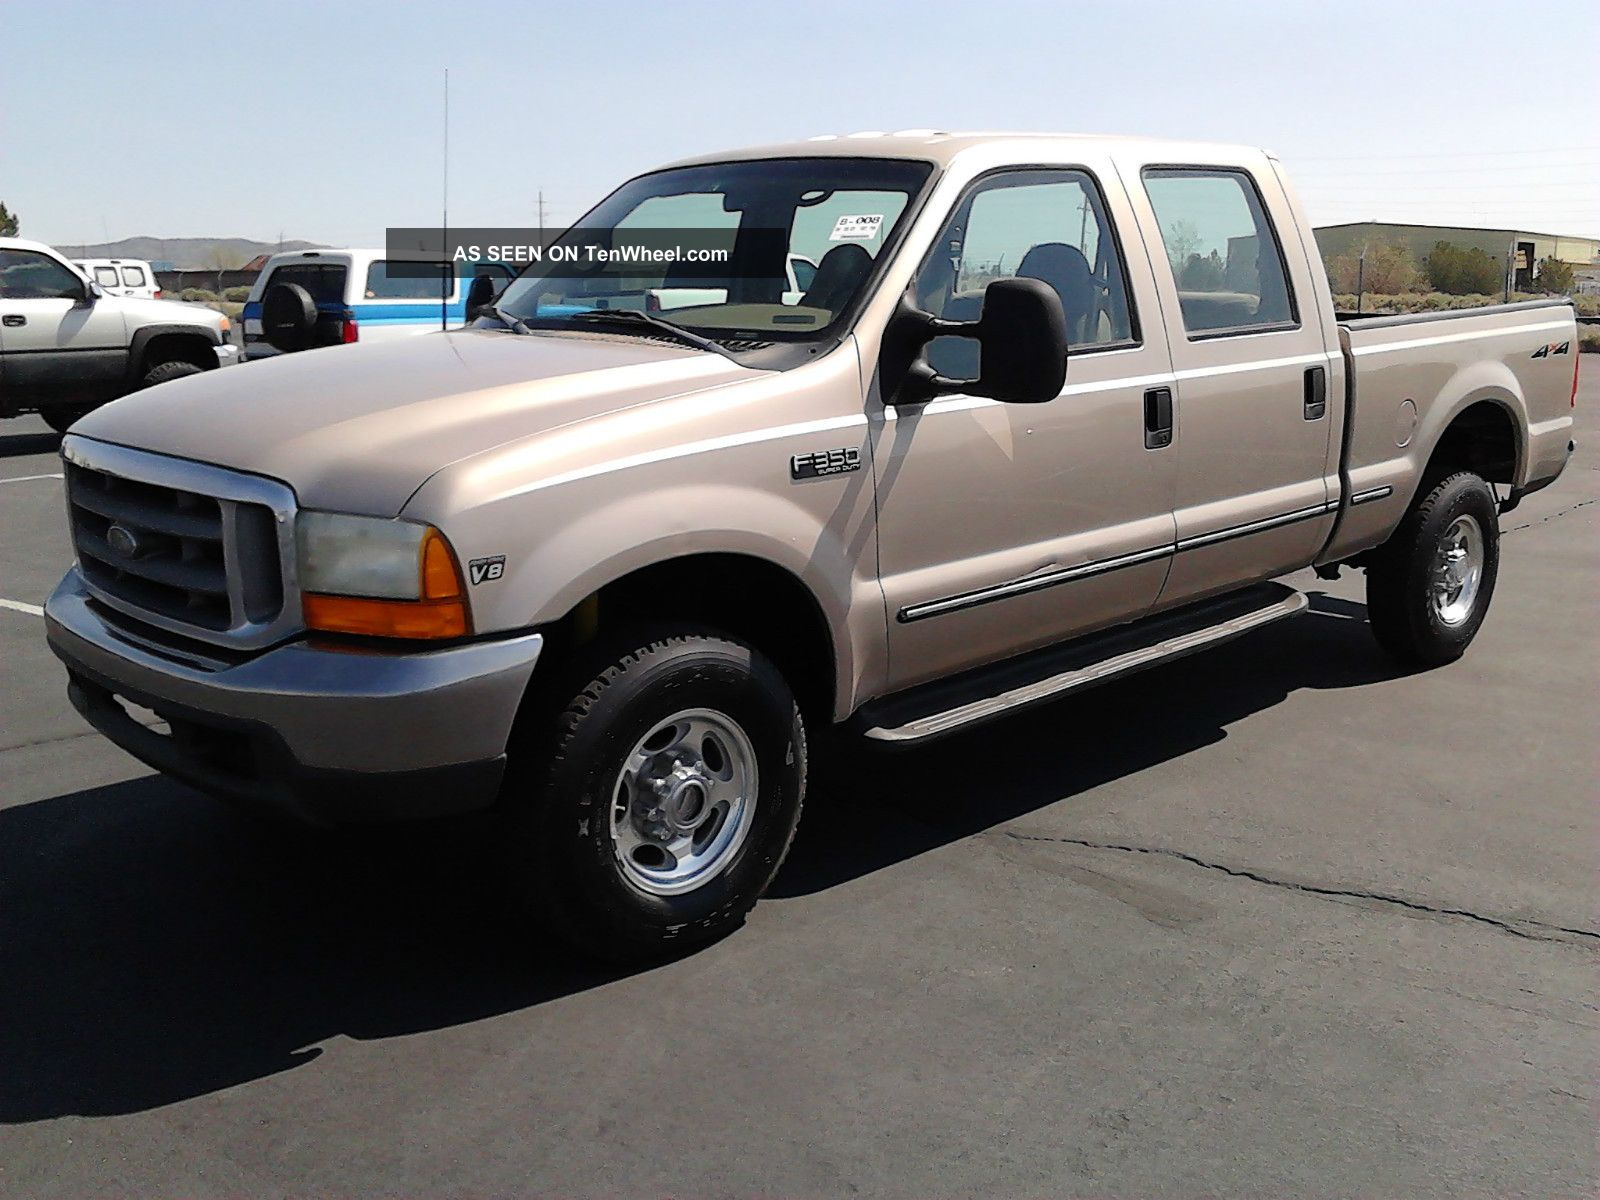 7 3 powerstroke software to draw er diagram 1999 ford f350 diesel